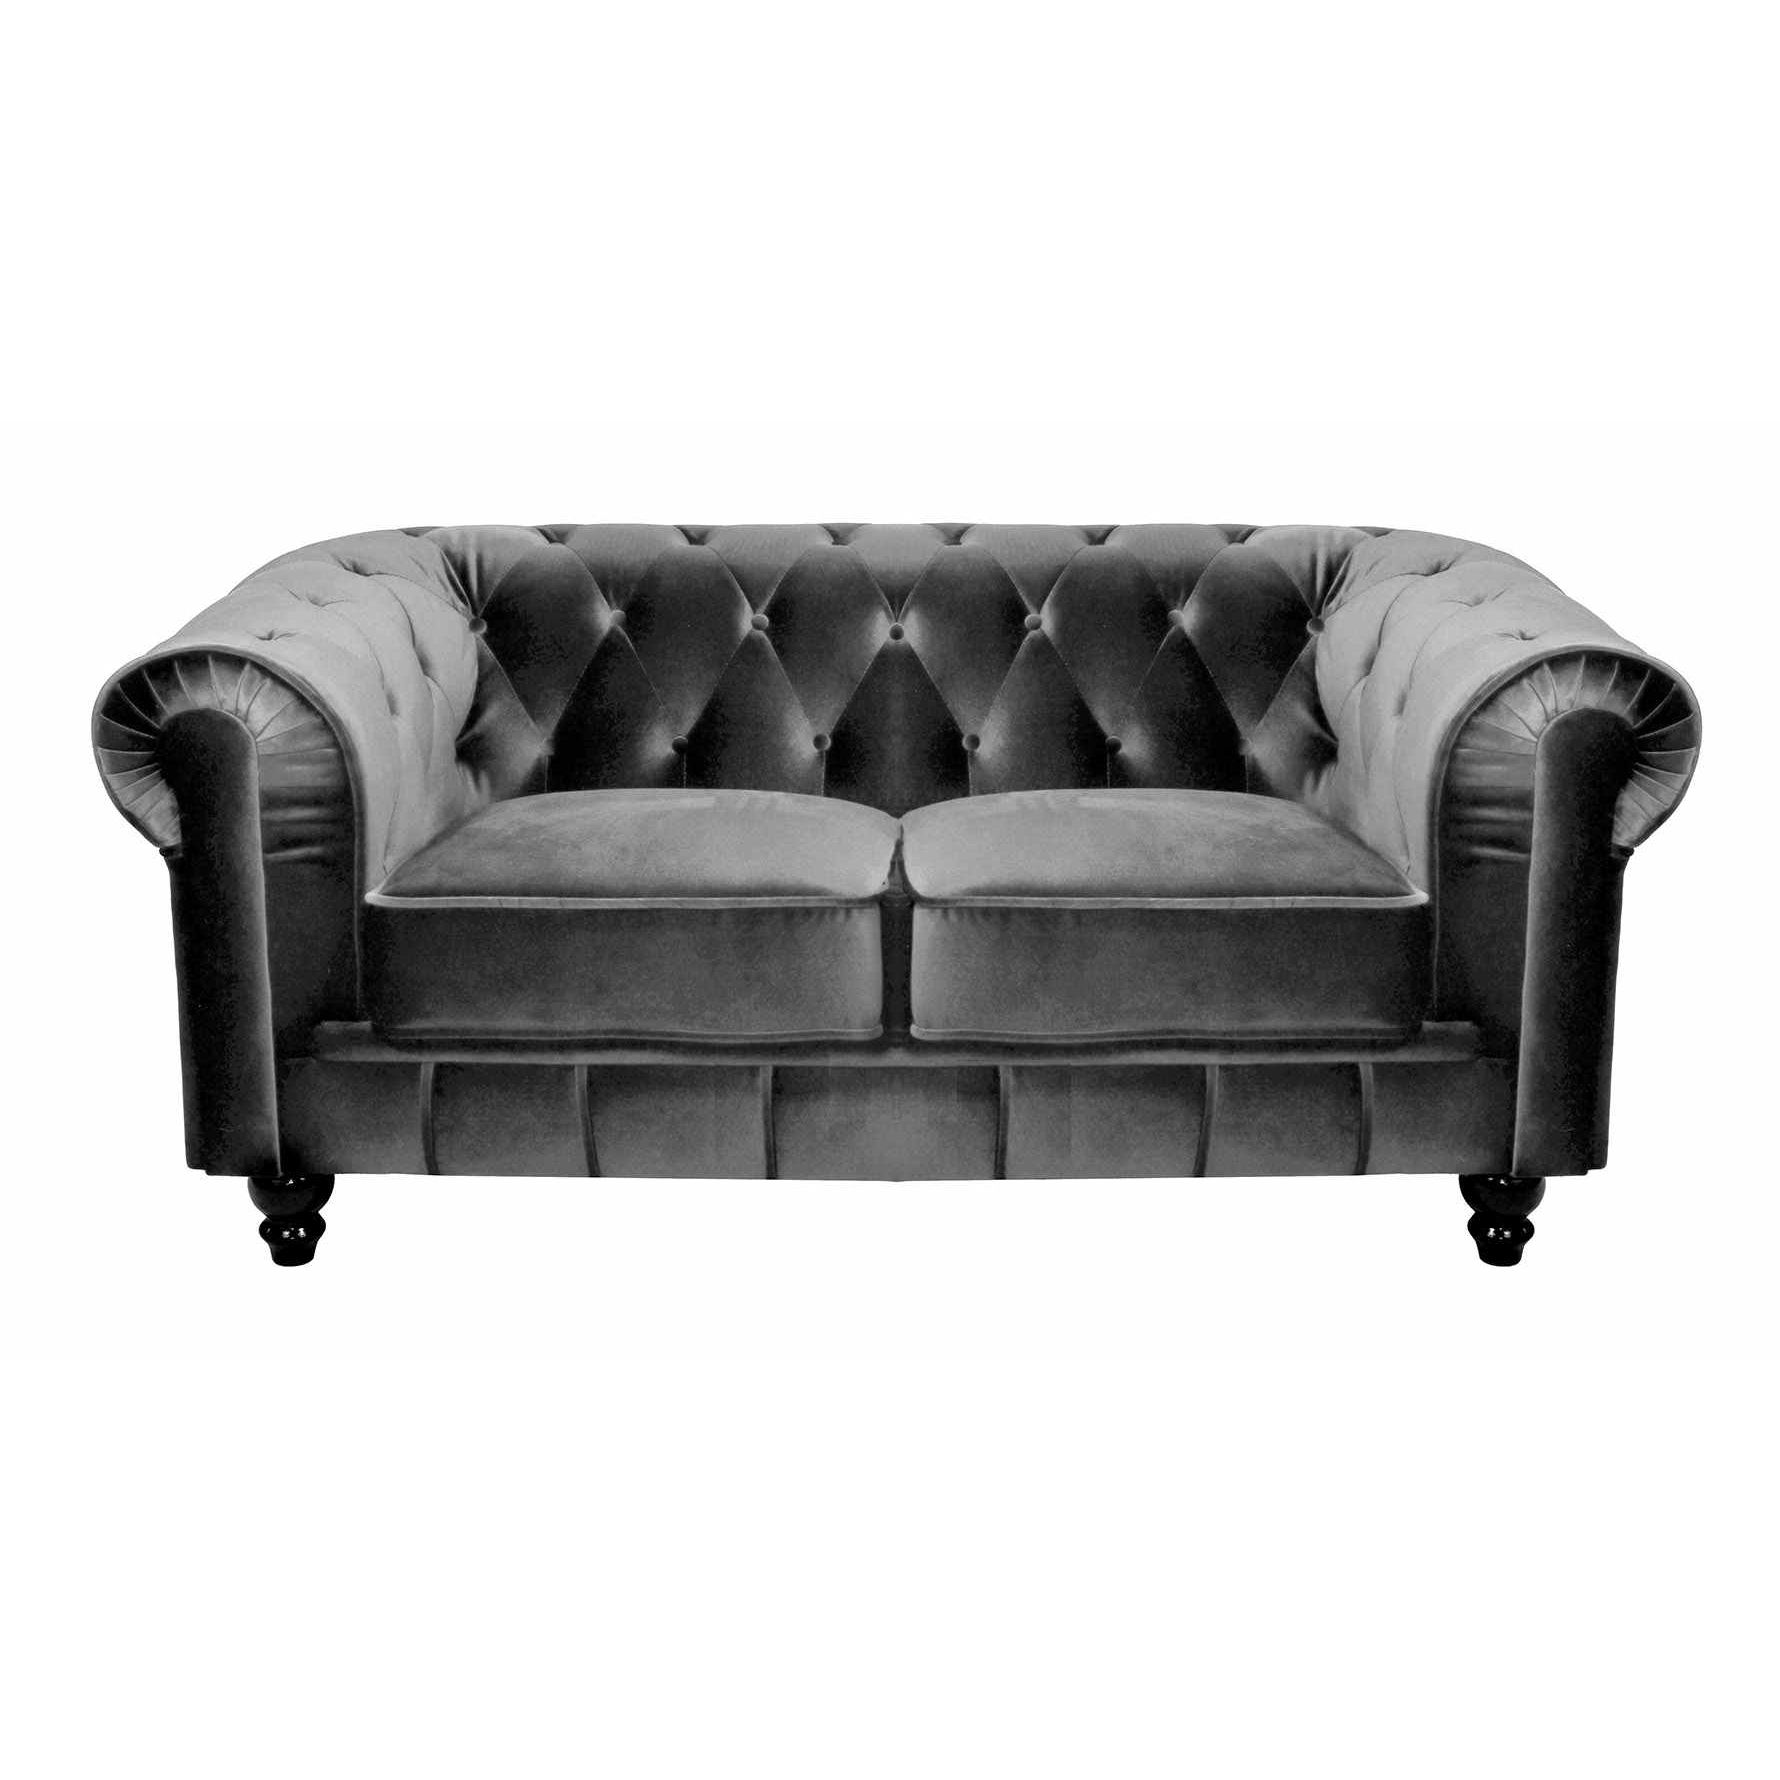 Deco in paris canape 2 places velours gris chesterfield can chester 2p velo - Canape chesterfield velour ...